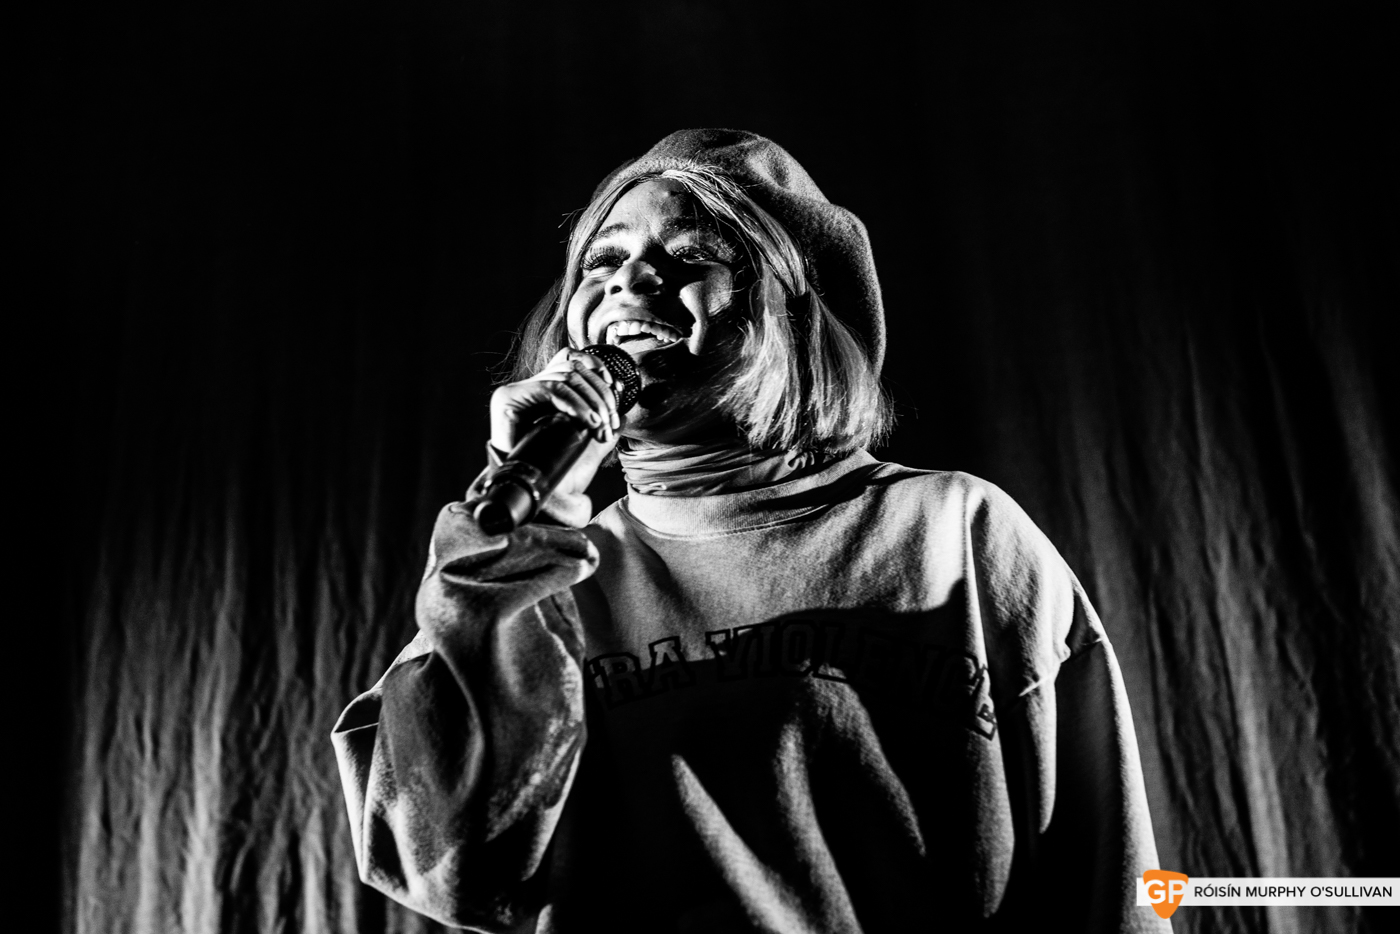 Tayla Parx in The Olympia by Roisin Murphy O'Sullivan (15 of 18)